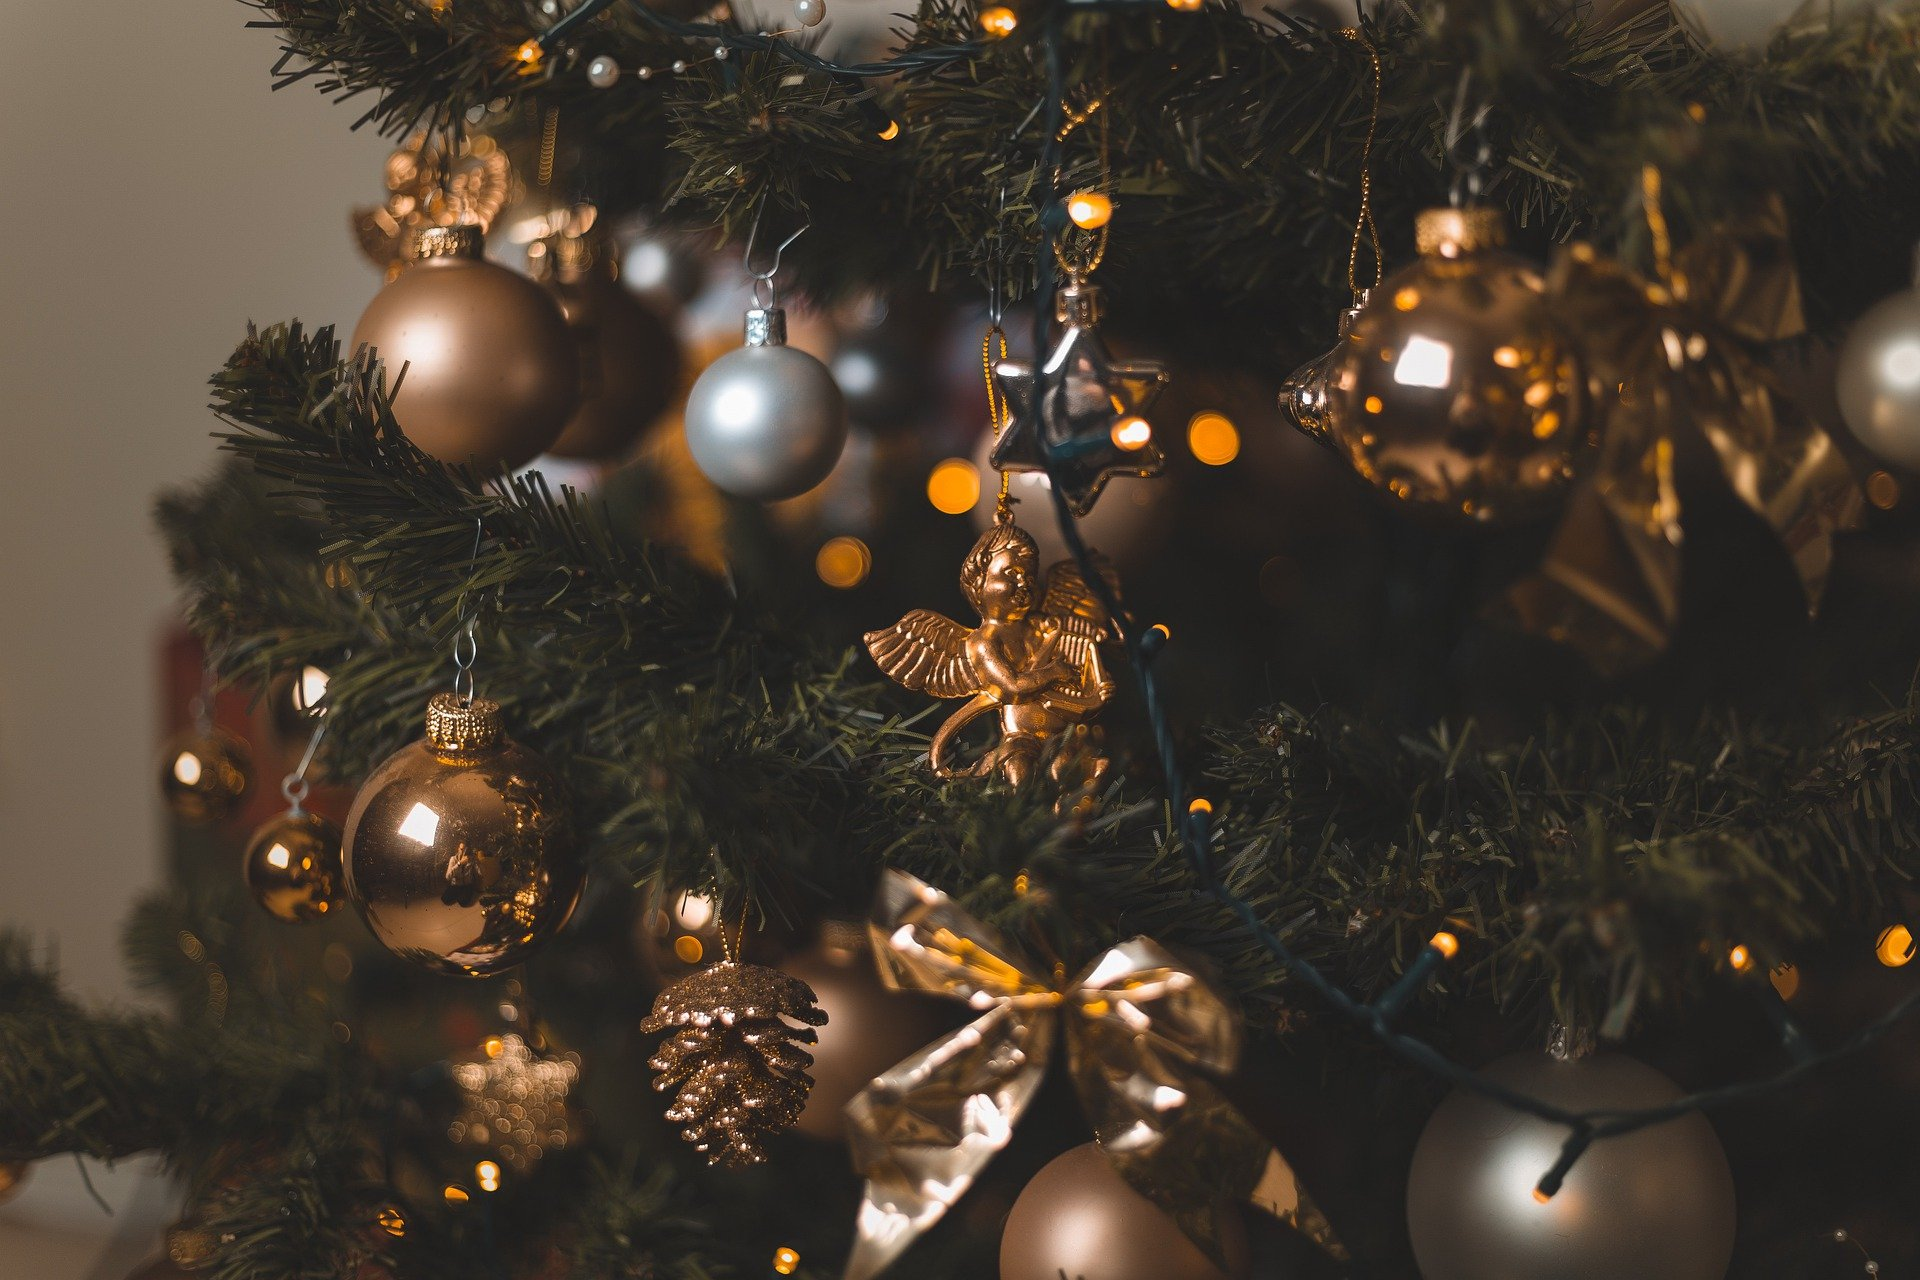 A close-up of a Christmas tree decorated with ornaments. Photo courtesy of captainmk via Pixabay.